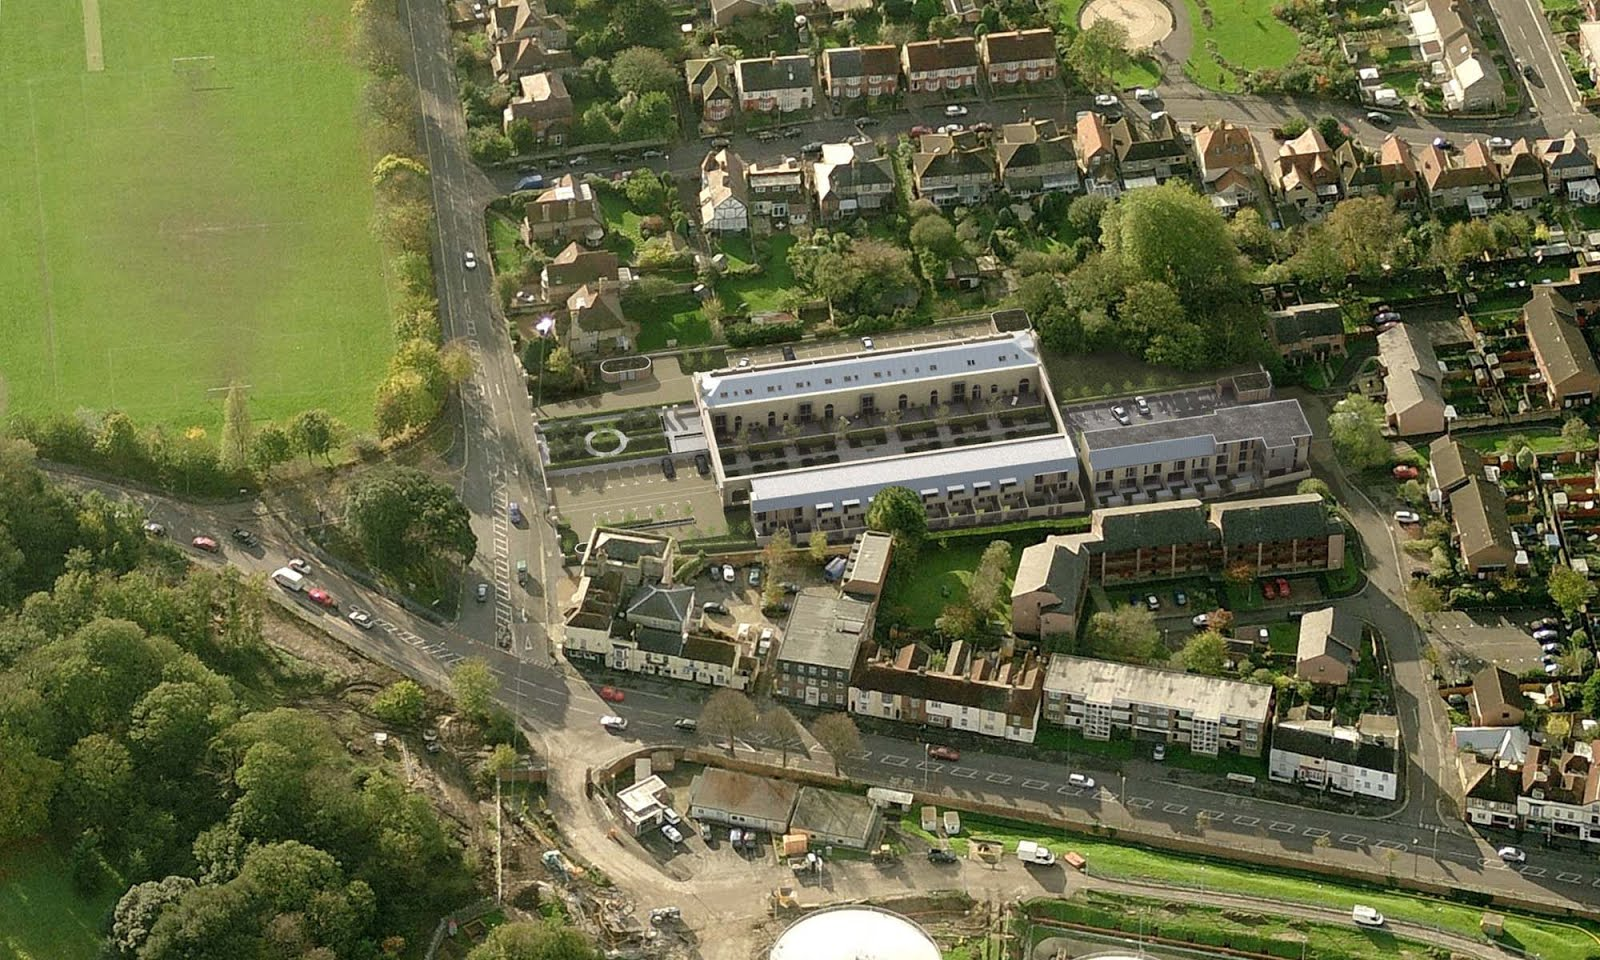 Gosport station from the air